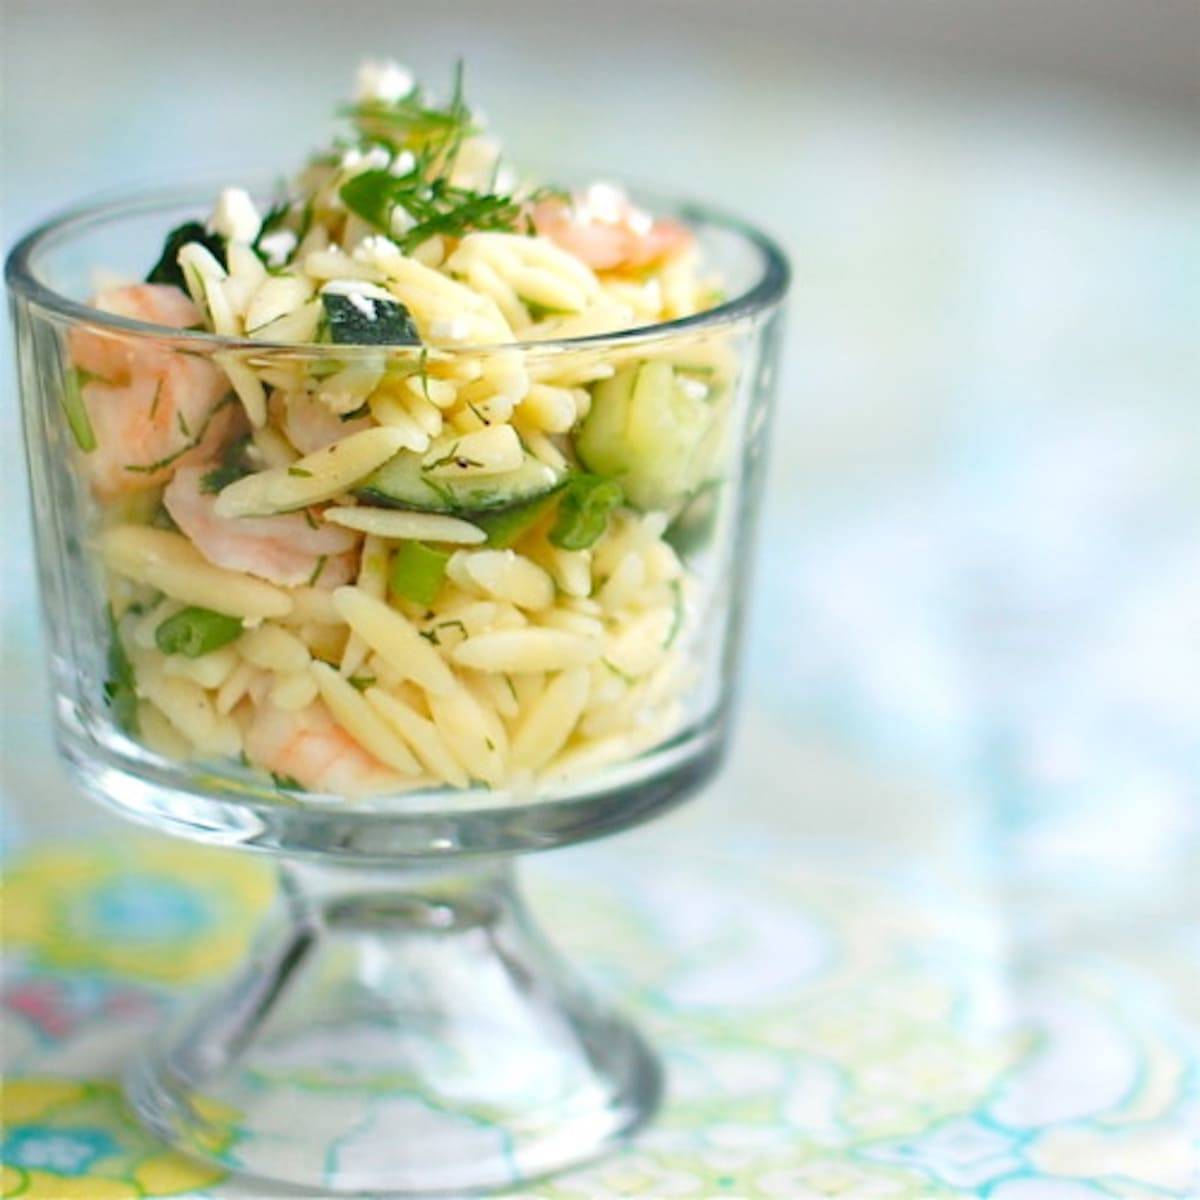 Shrimp and feta orzo in a glass dish.